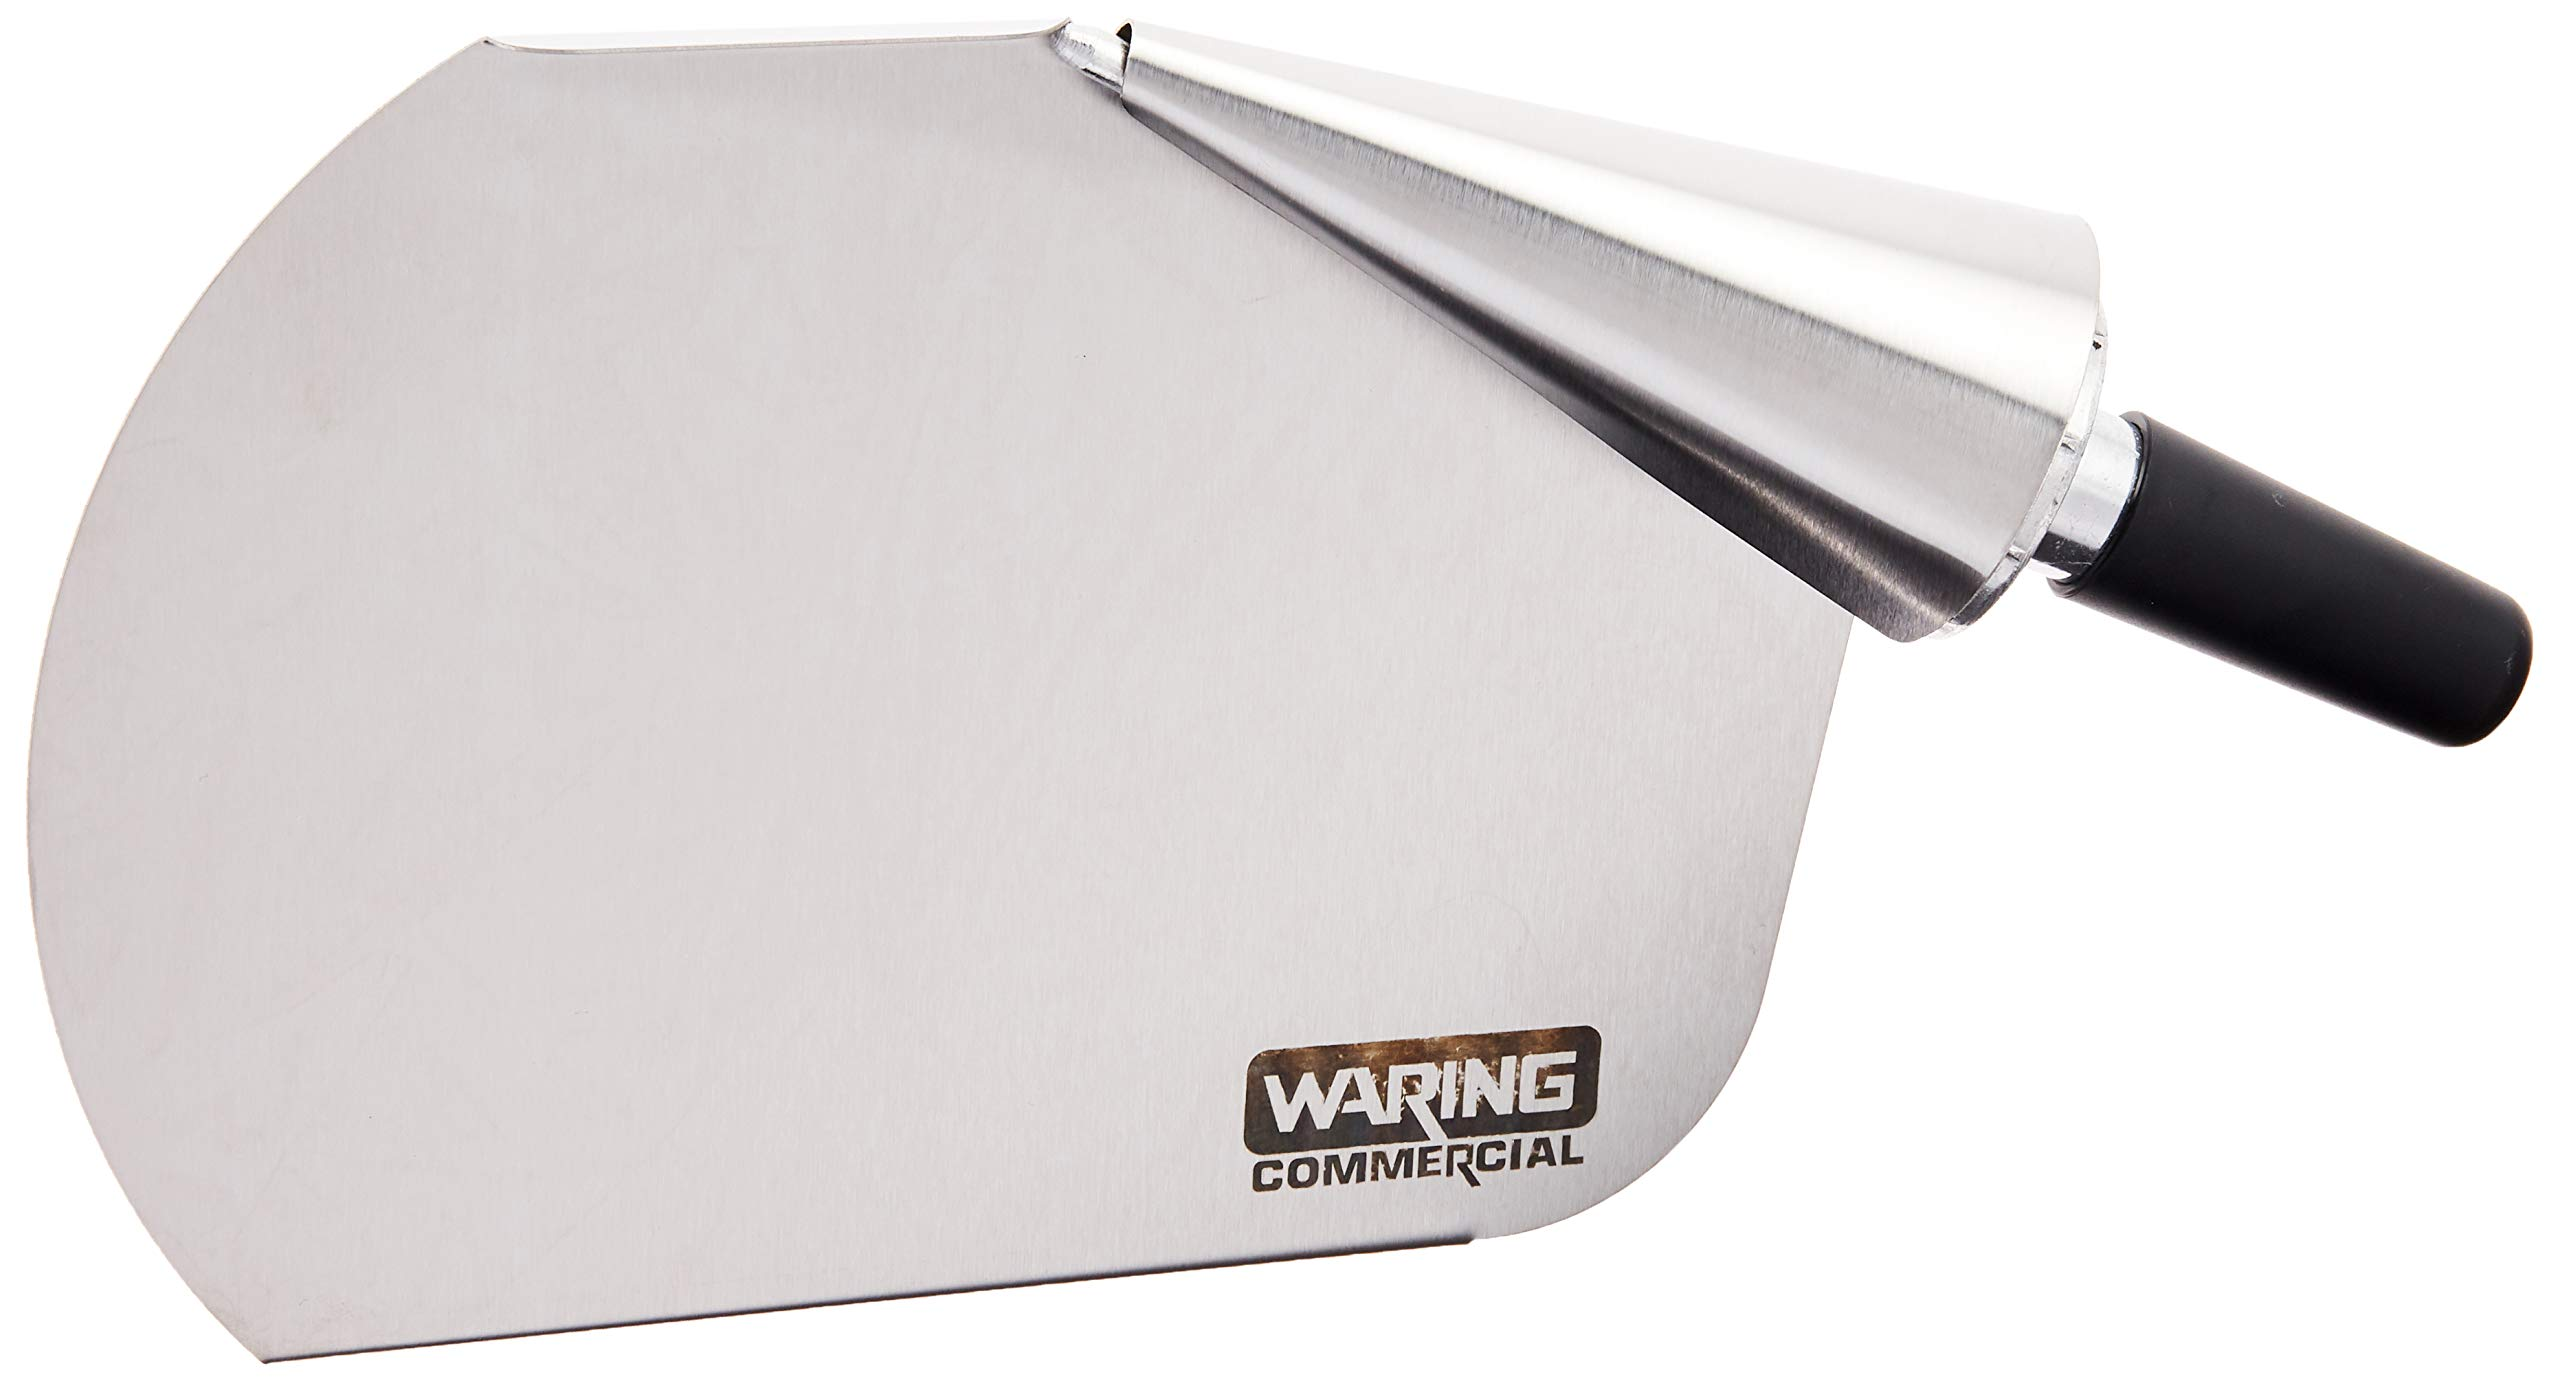 Waring Commercial CAC121S Rolling & Forming Tool, Silver